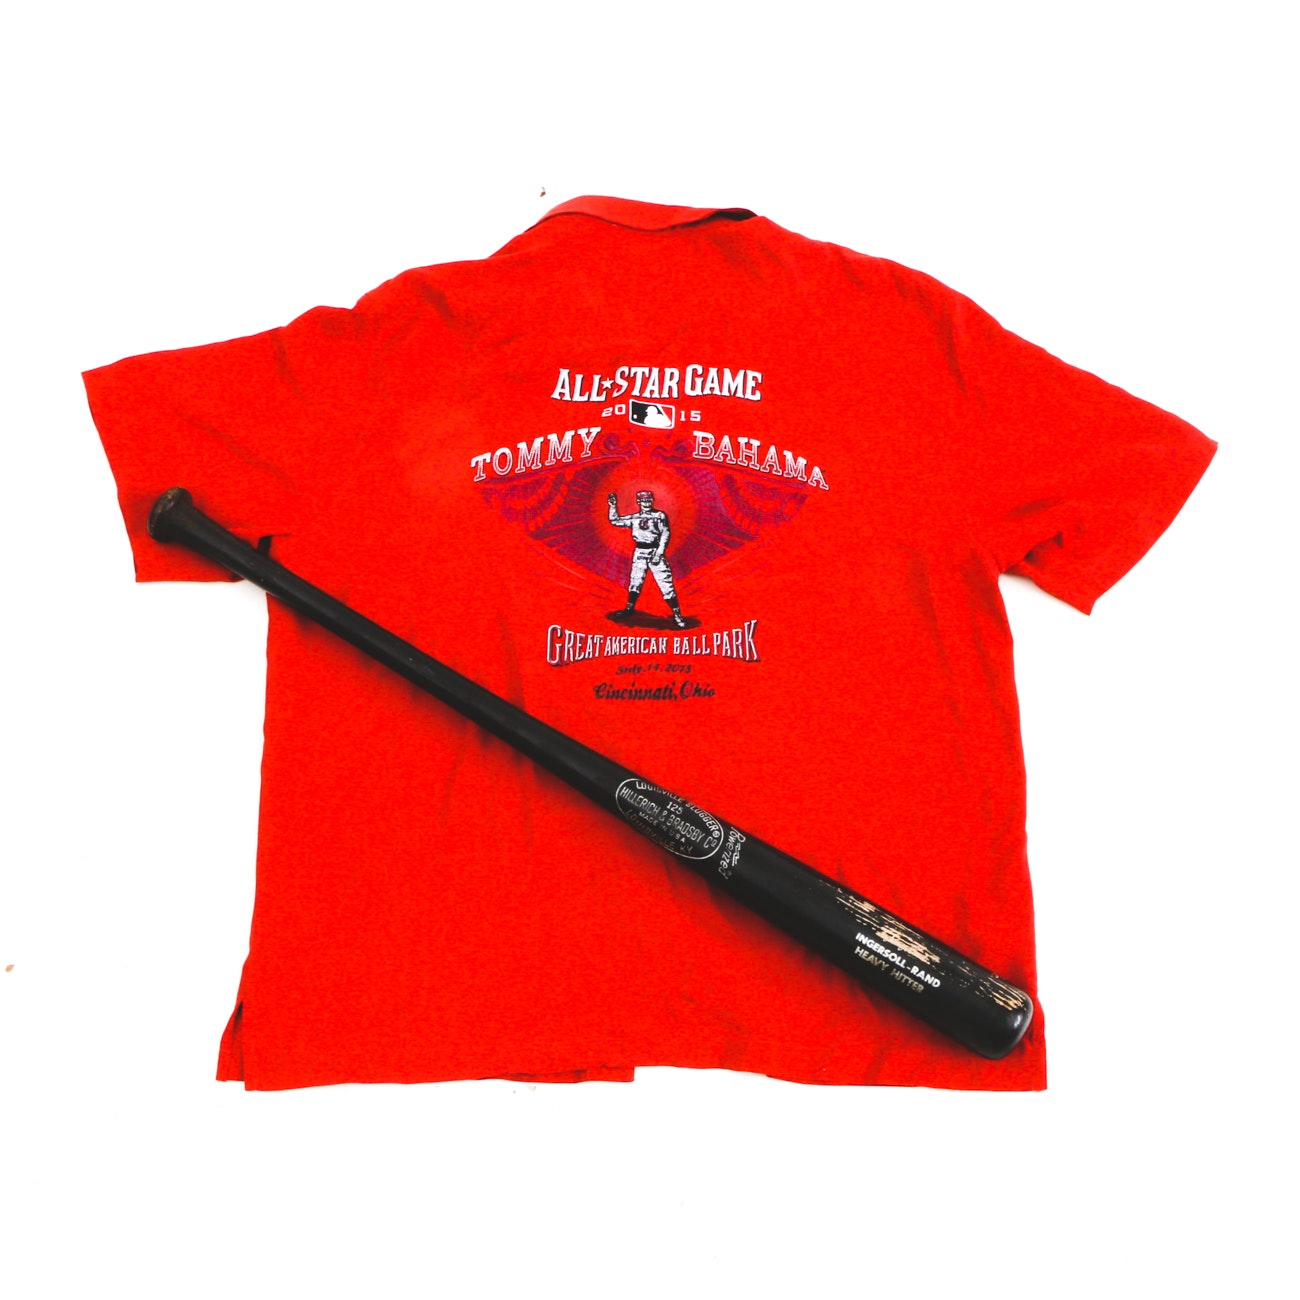 2015 Tommy Bahama All Star Shirt with Bat